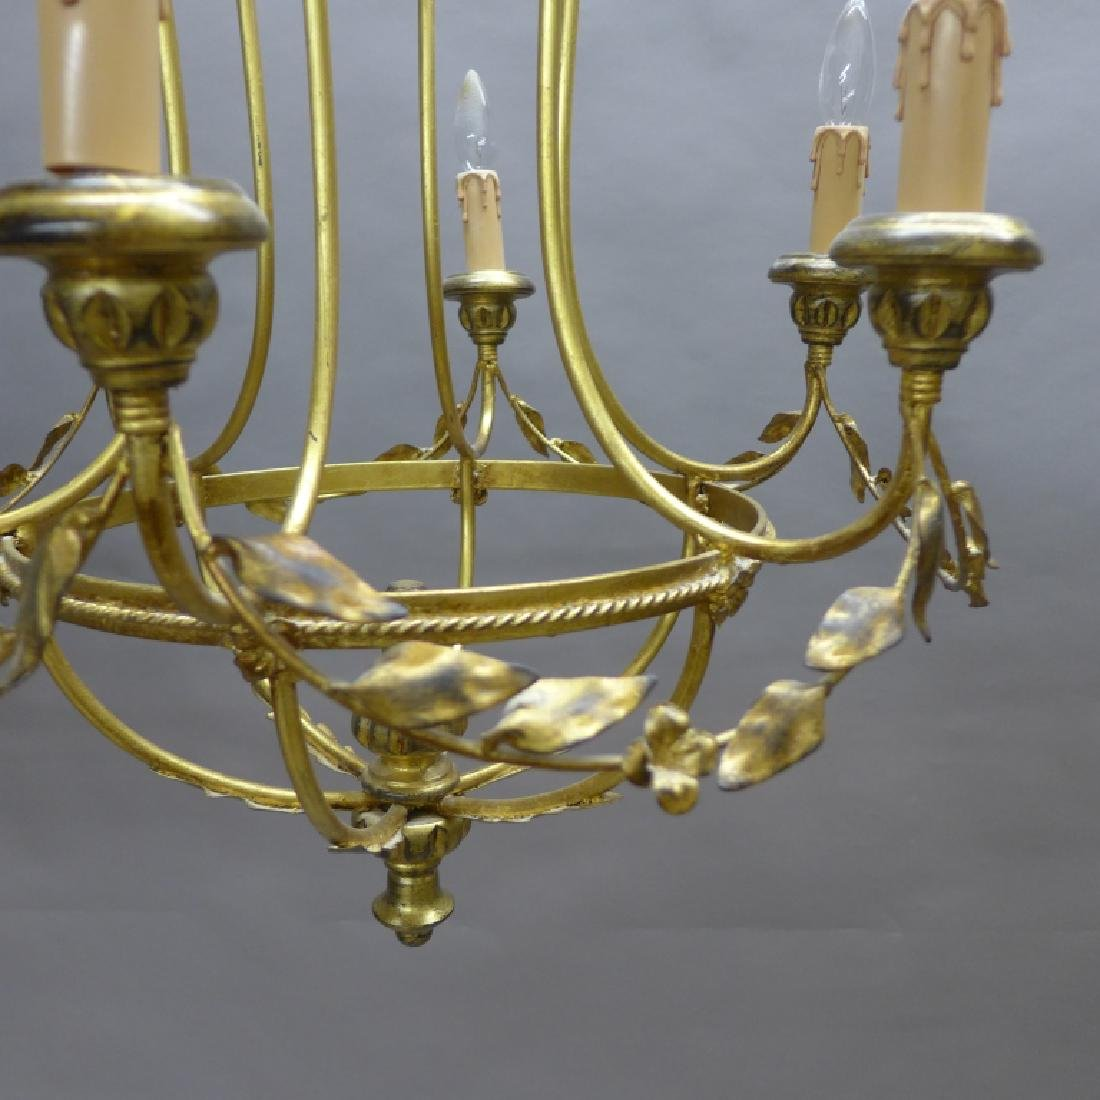 Neoclassical Style Chandelier - 6